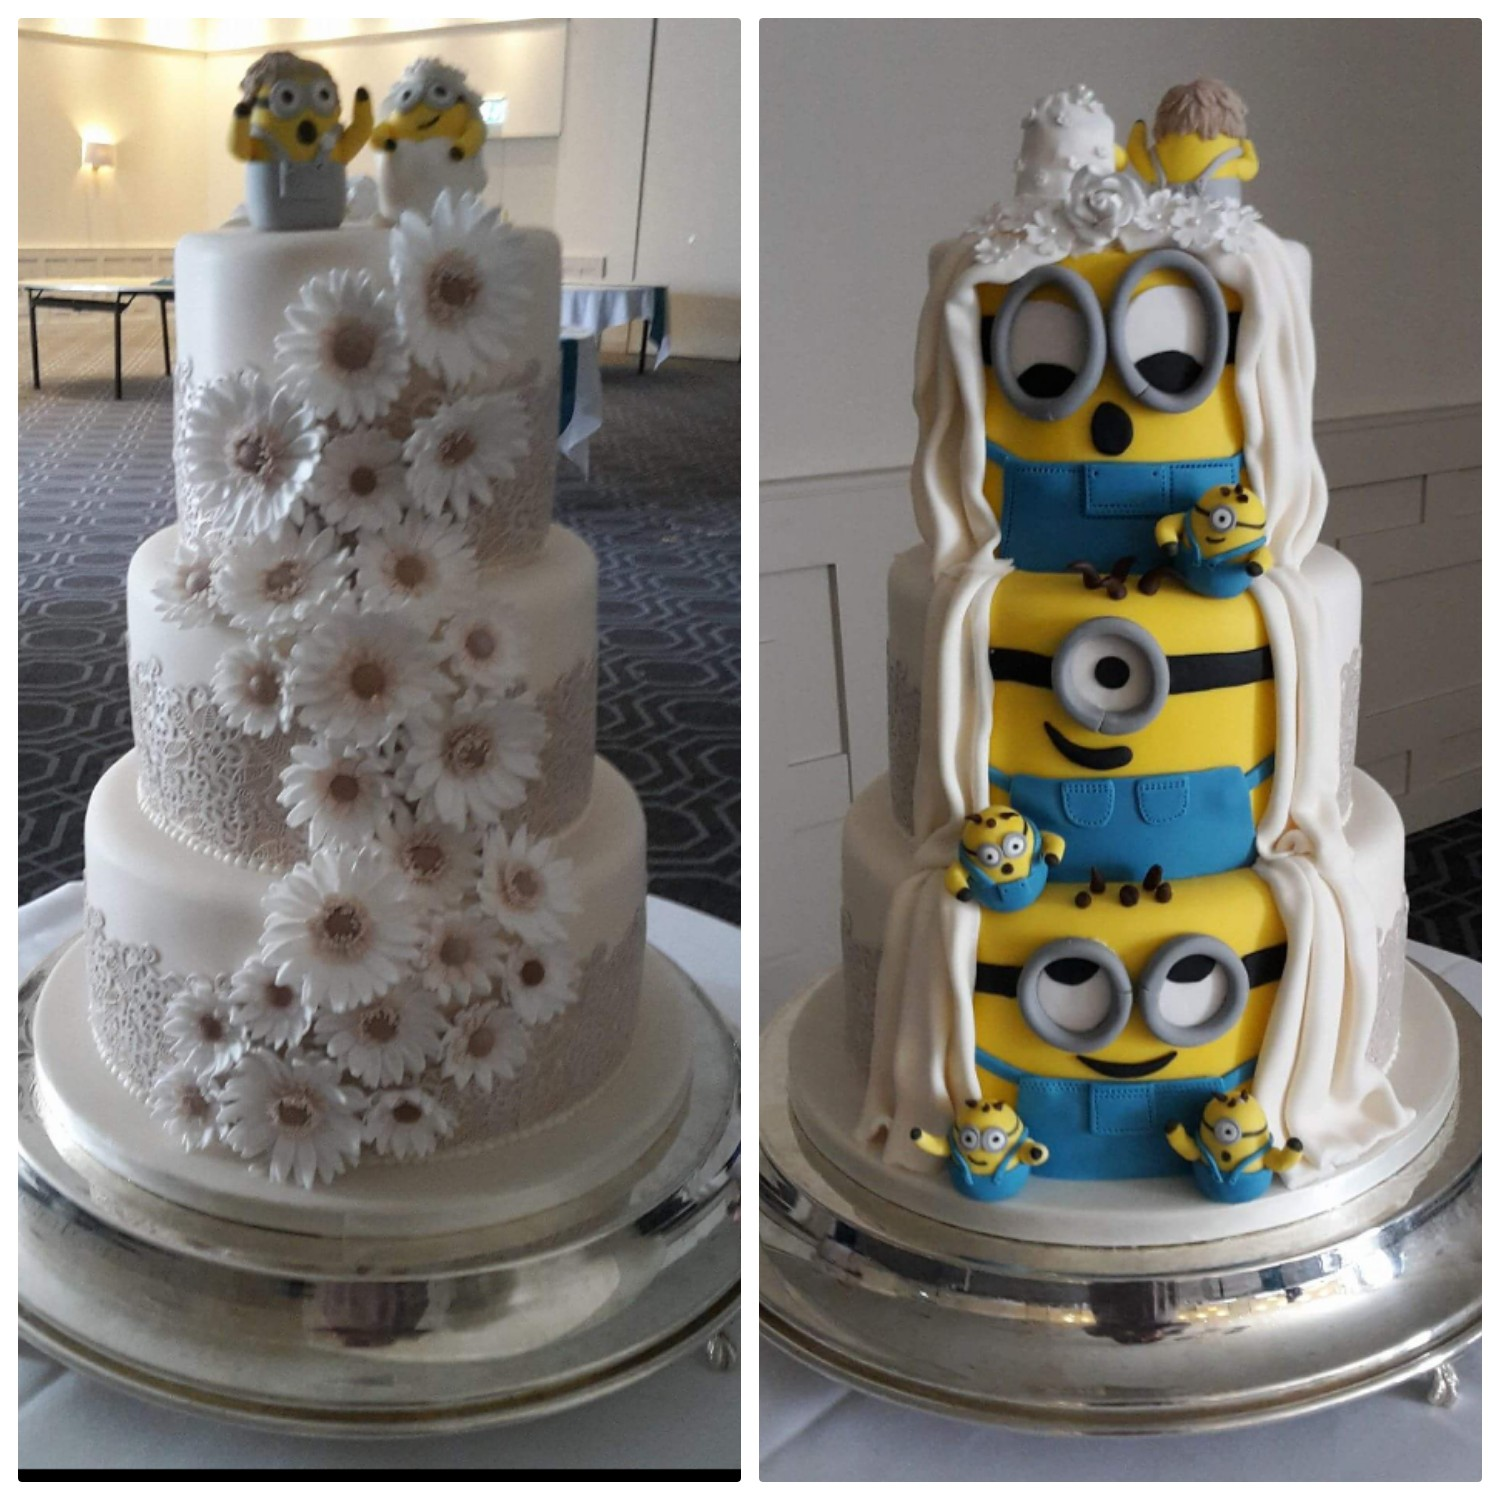 I don t even have words for this wedding cake   ATBGE FoodI don t even have words for this wedding cake